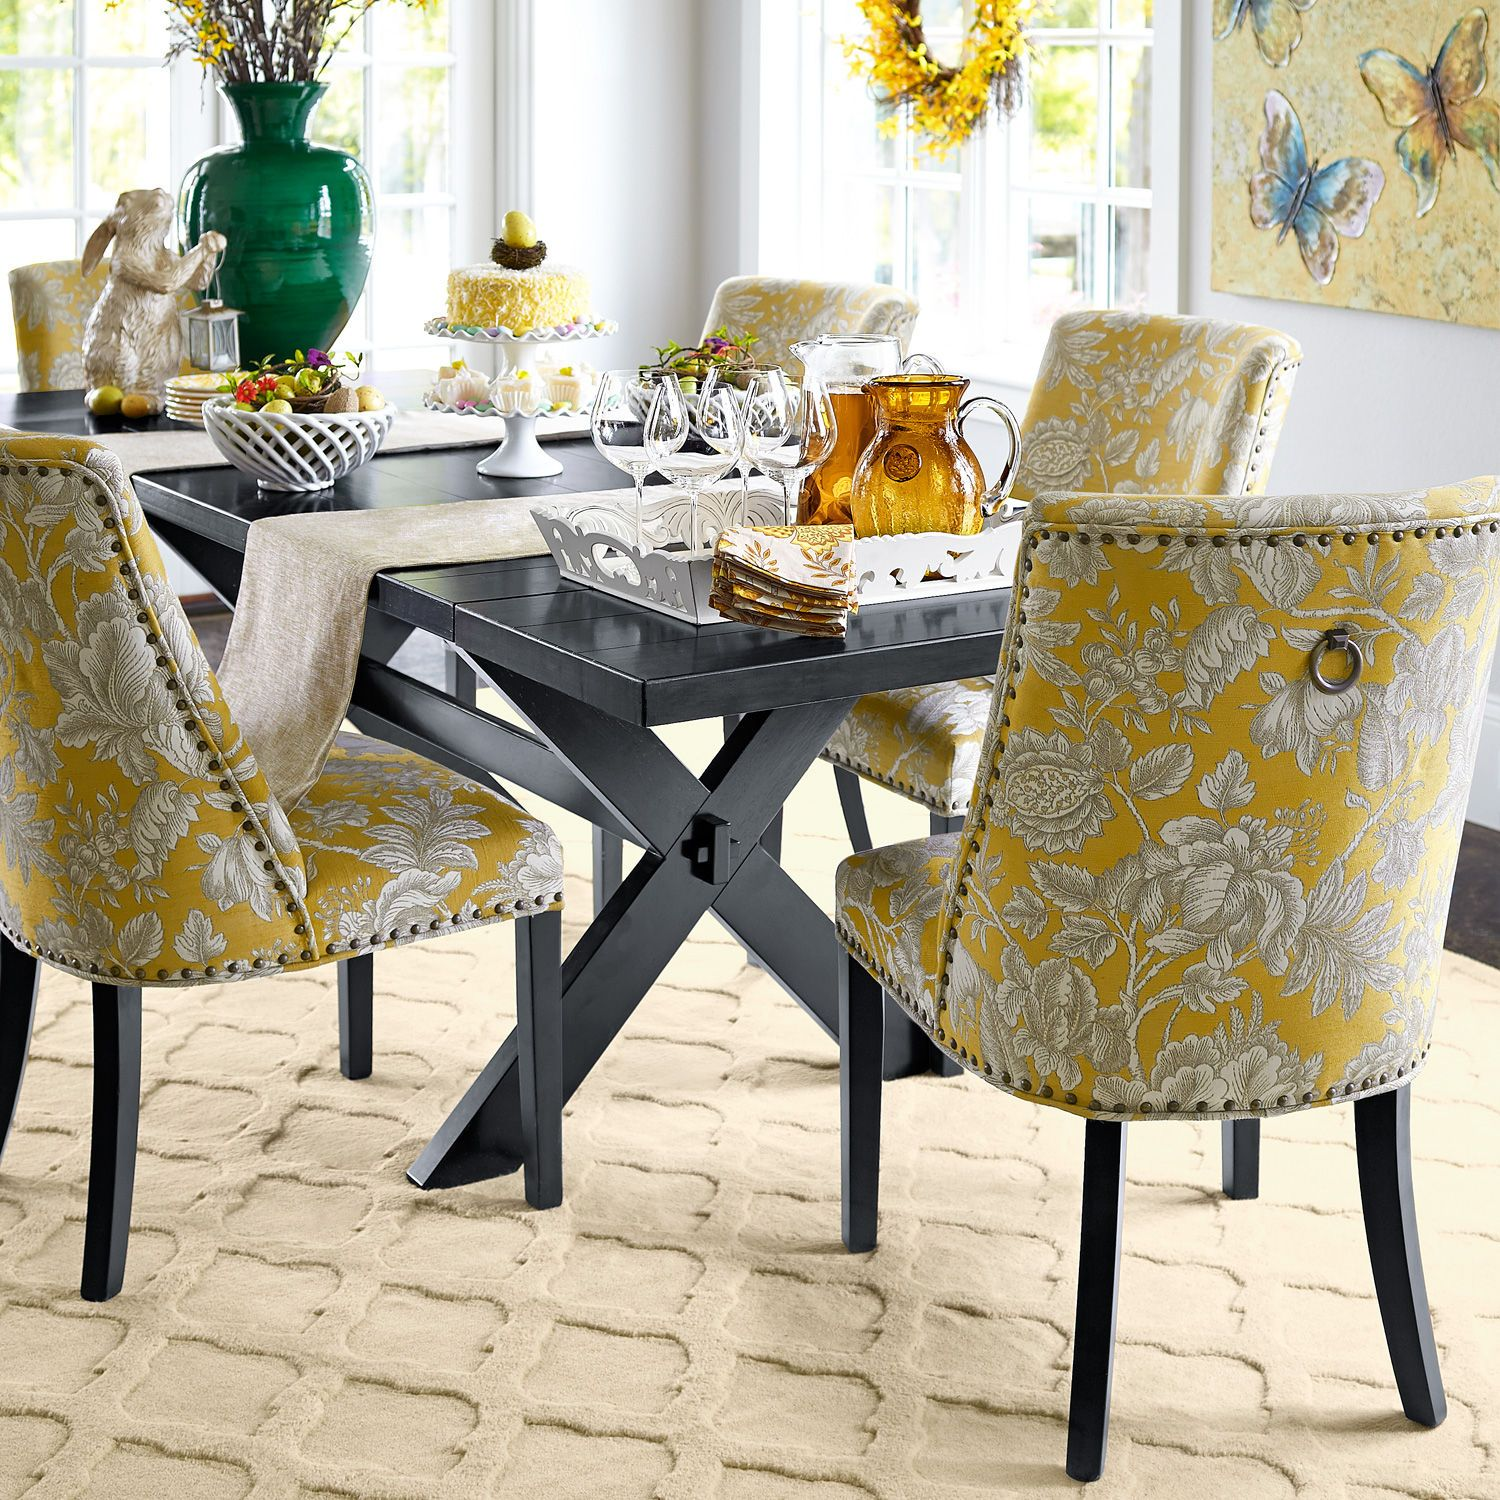 Black White Floral Dining Side Chair Set: Corinne Gold Dining Chair With Black Espresso Wood